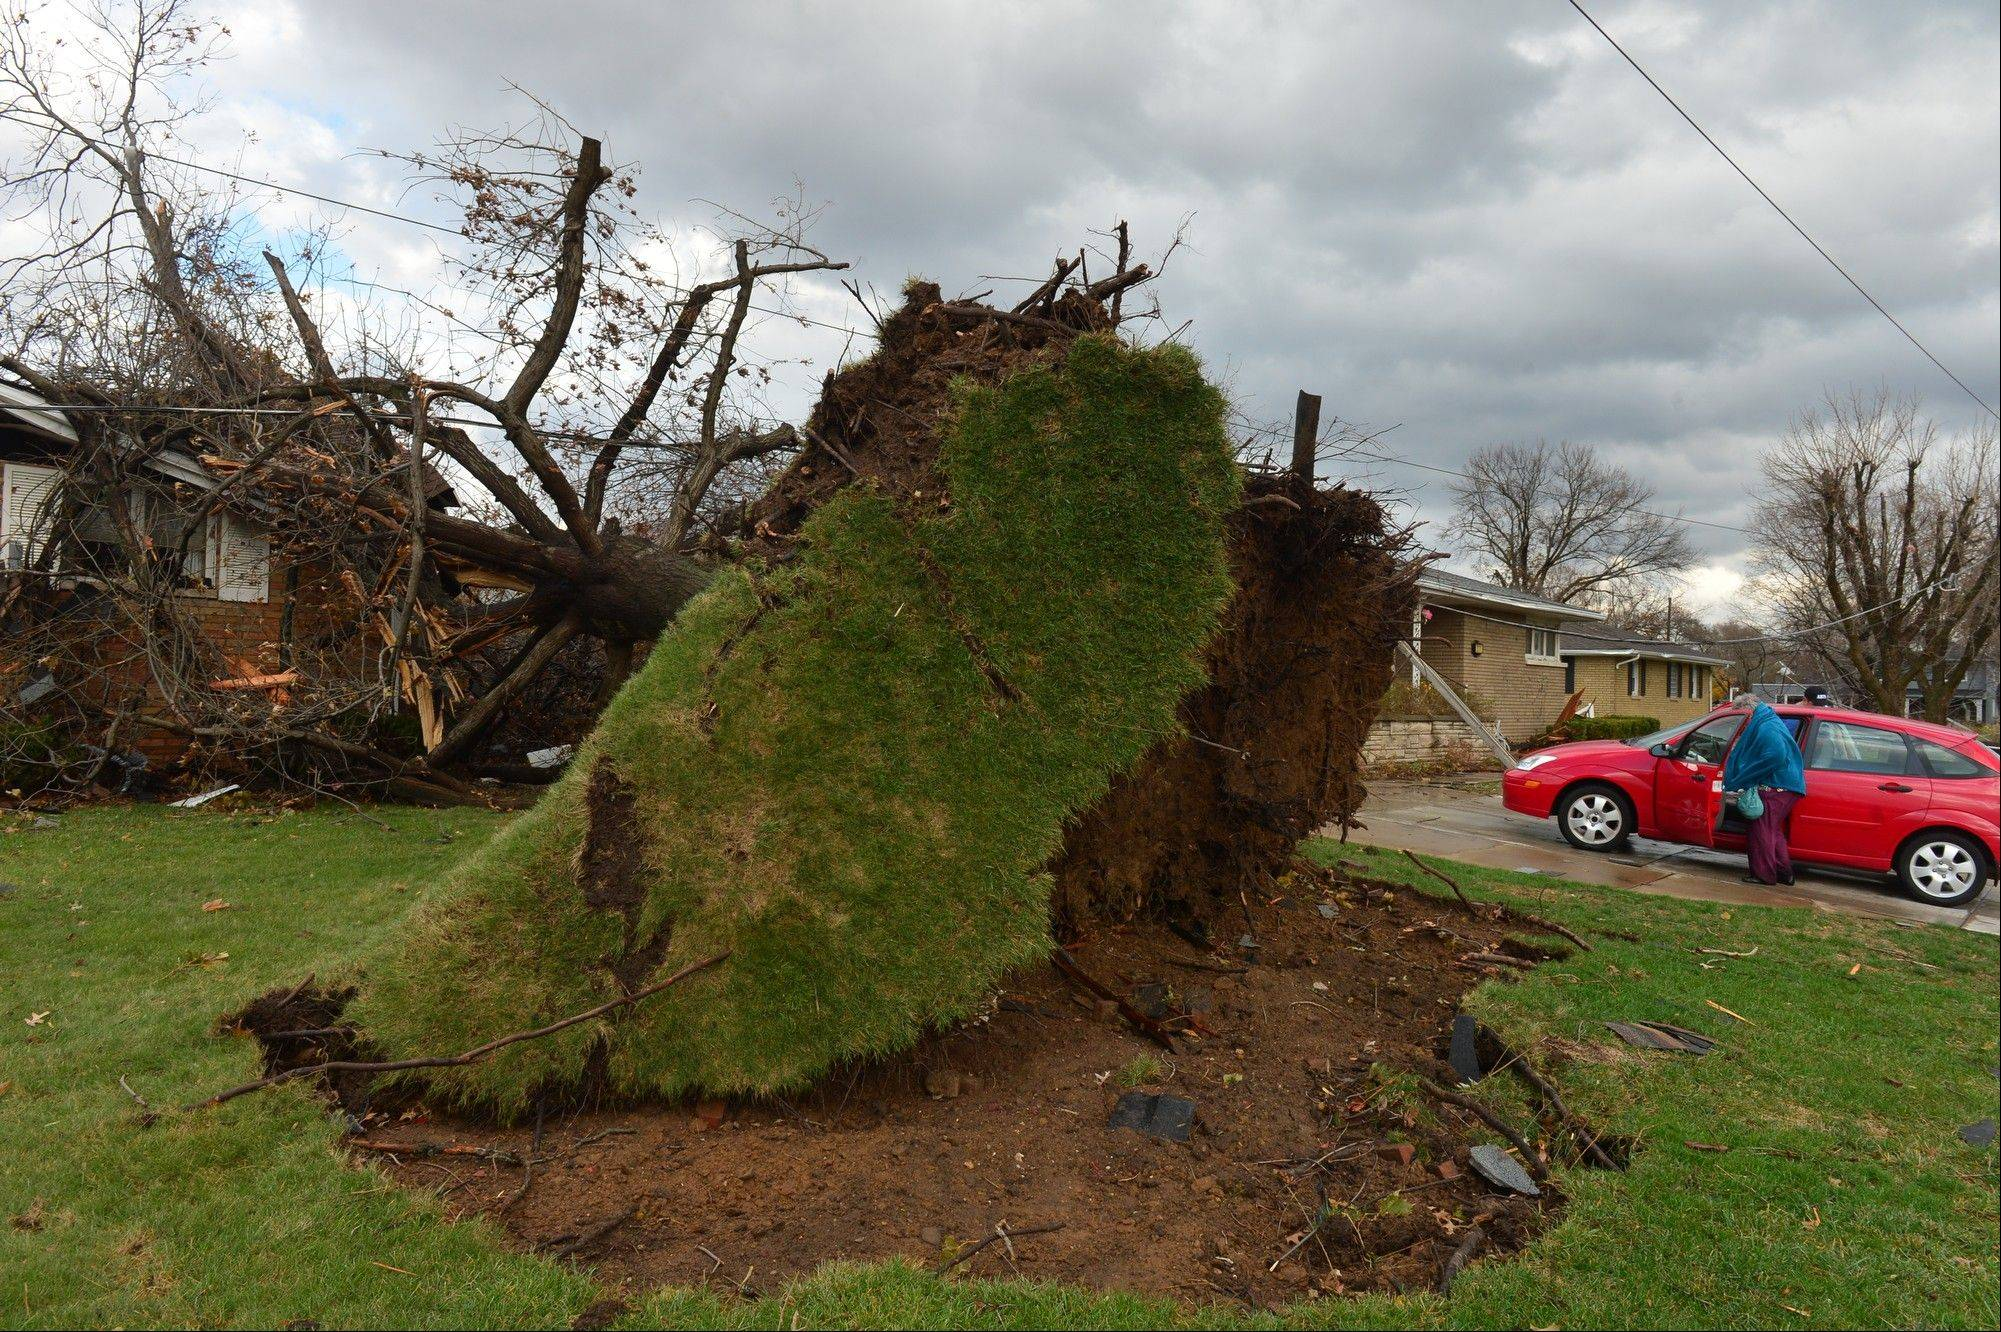 A tree was pulled out of the ground by the roots, collapsing onto a house after a tornado left a path of devastation through the north end of Pekin, Il.,Sunday, Nov. 17, 2013. Intense thunderstorms and tornadoes swept across the Midwest on Sunday, causing extensive damage in several central Illinois communities while sending people to their basements for shelter.